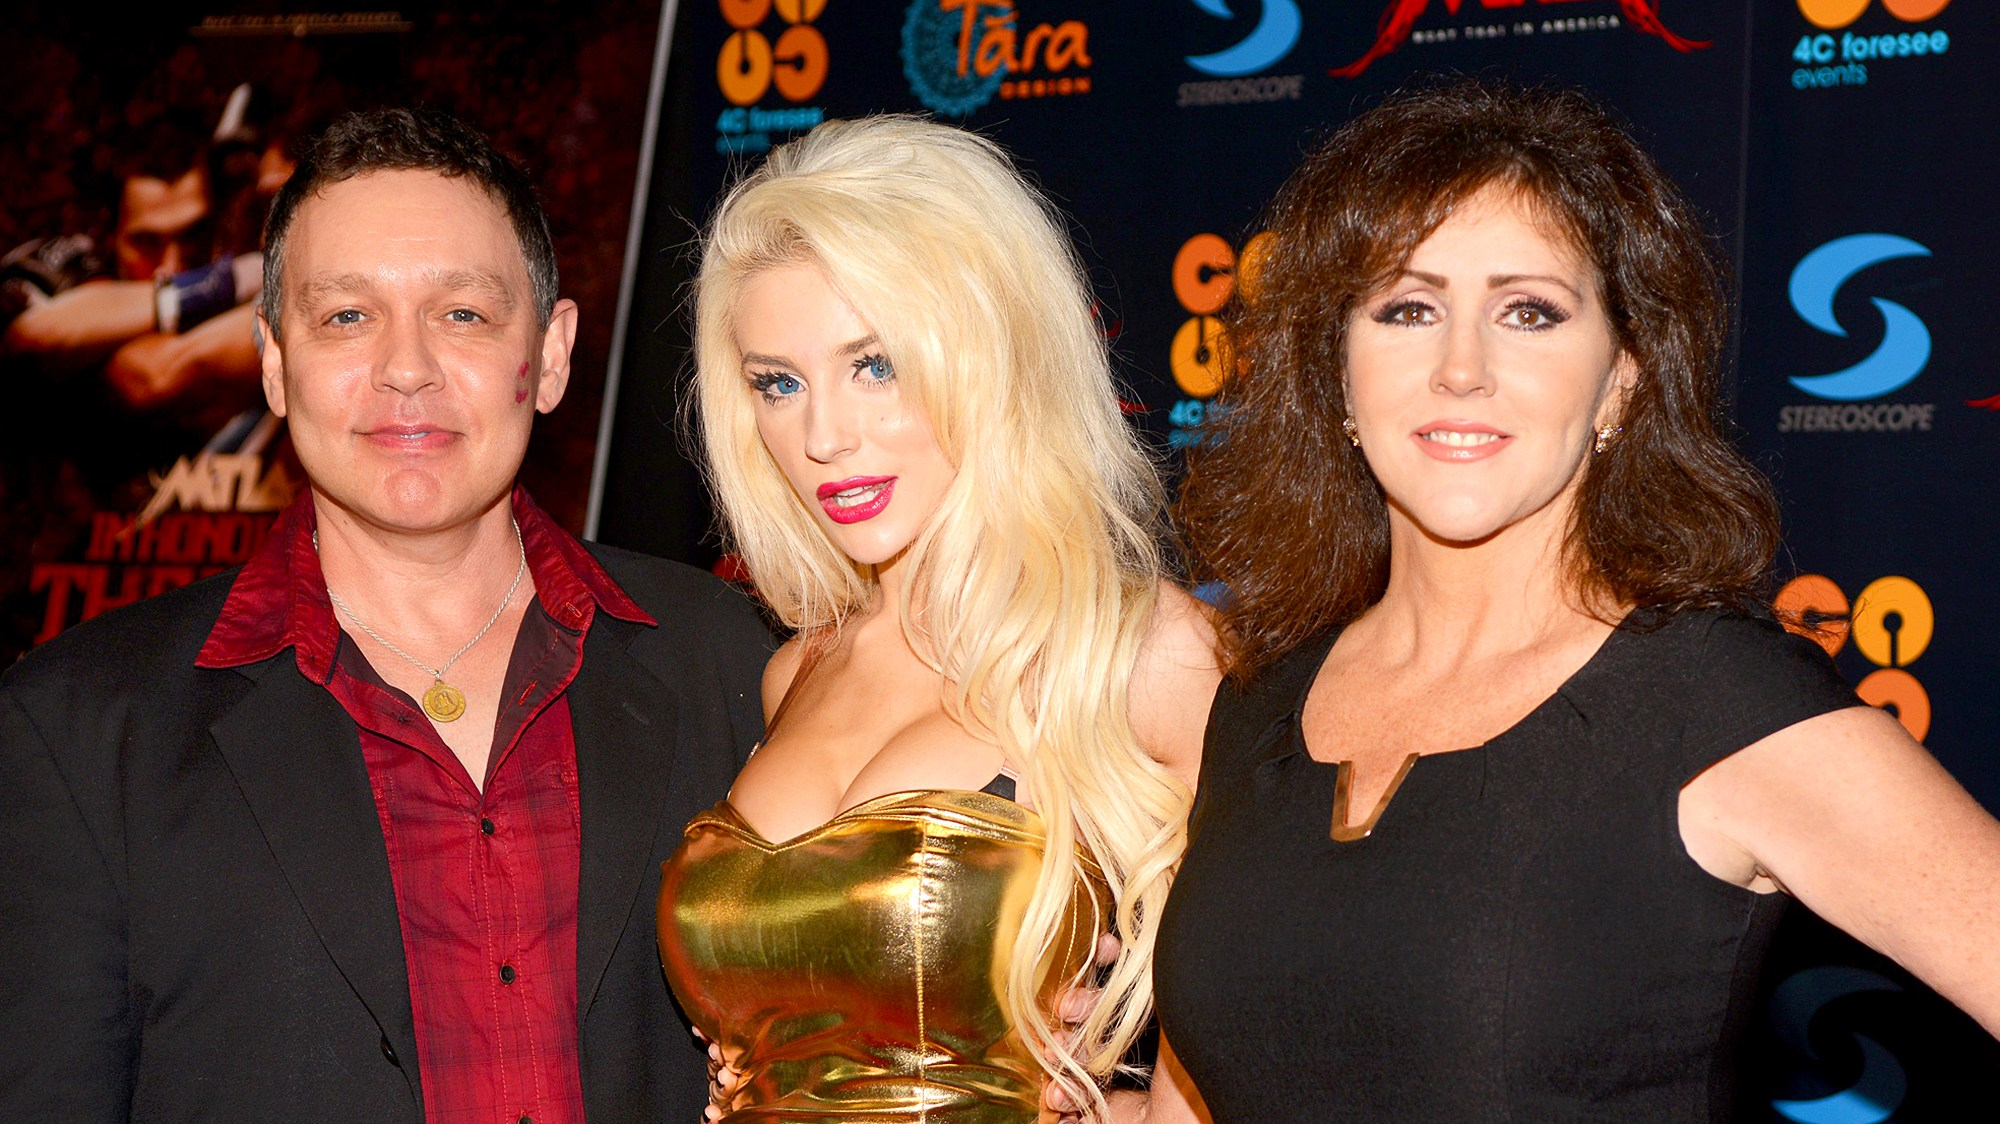 Doug Hutchison, Courtney Stodden and Krista Keller